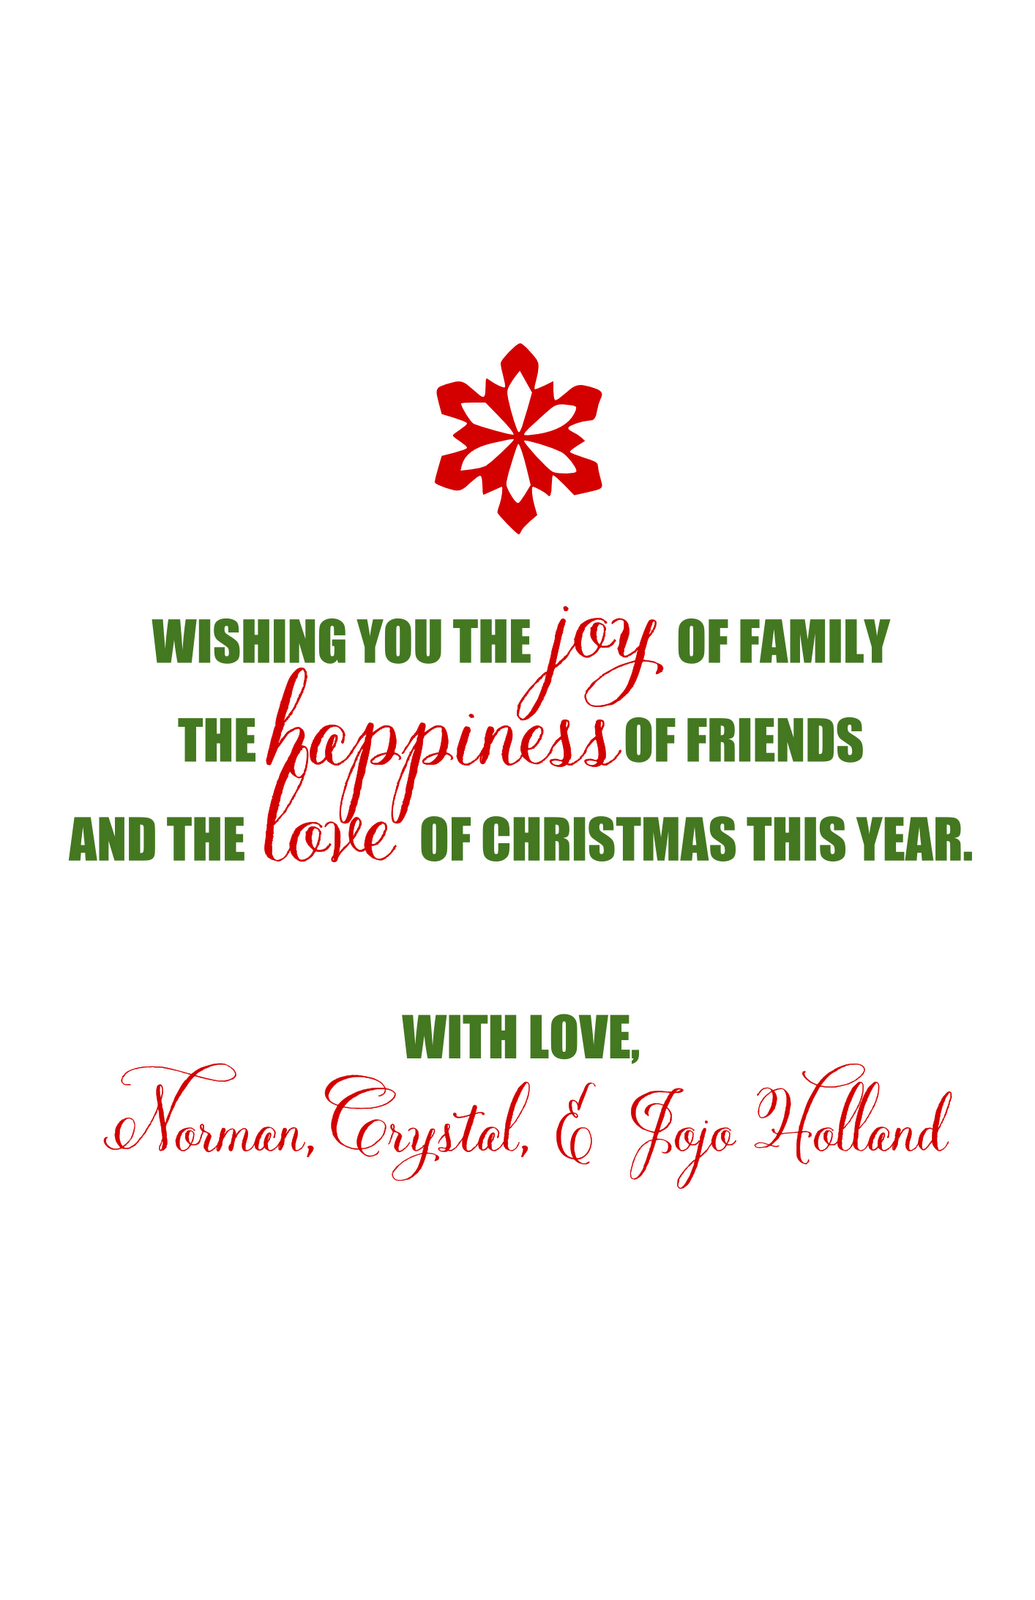 Christmas Card Messages for Clients Sample Messages - induced.info